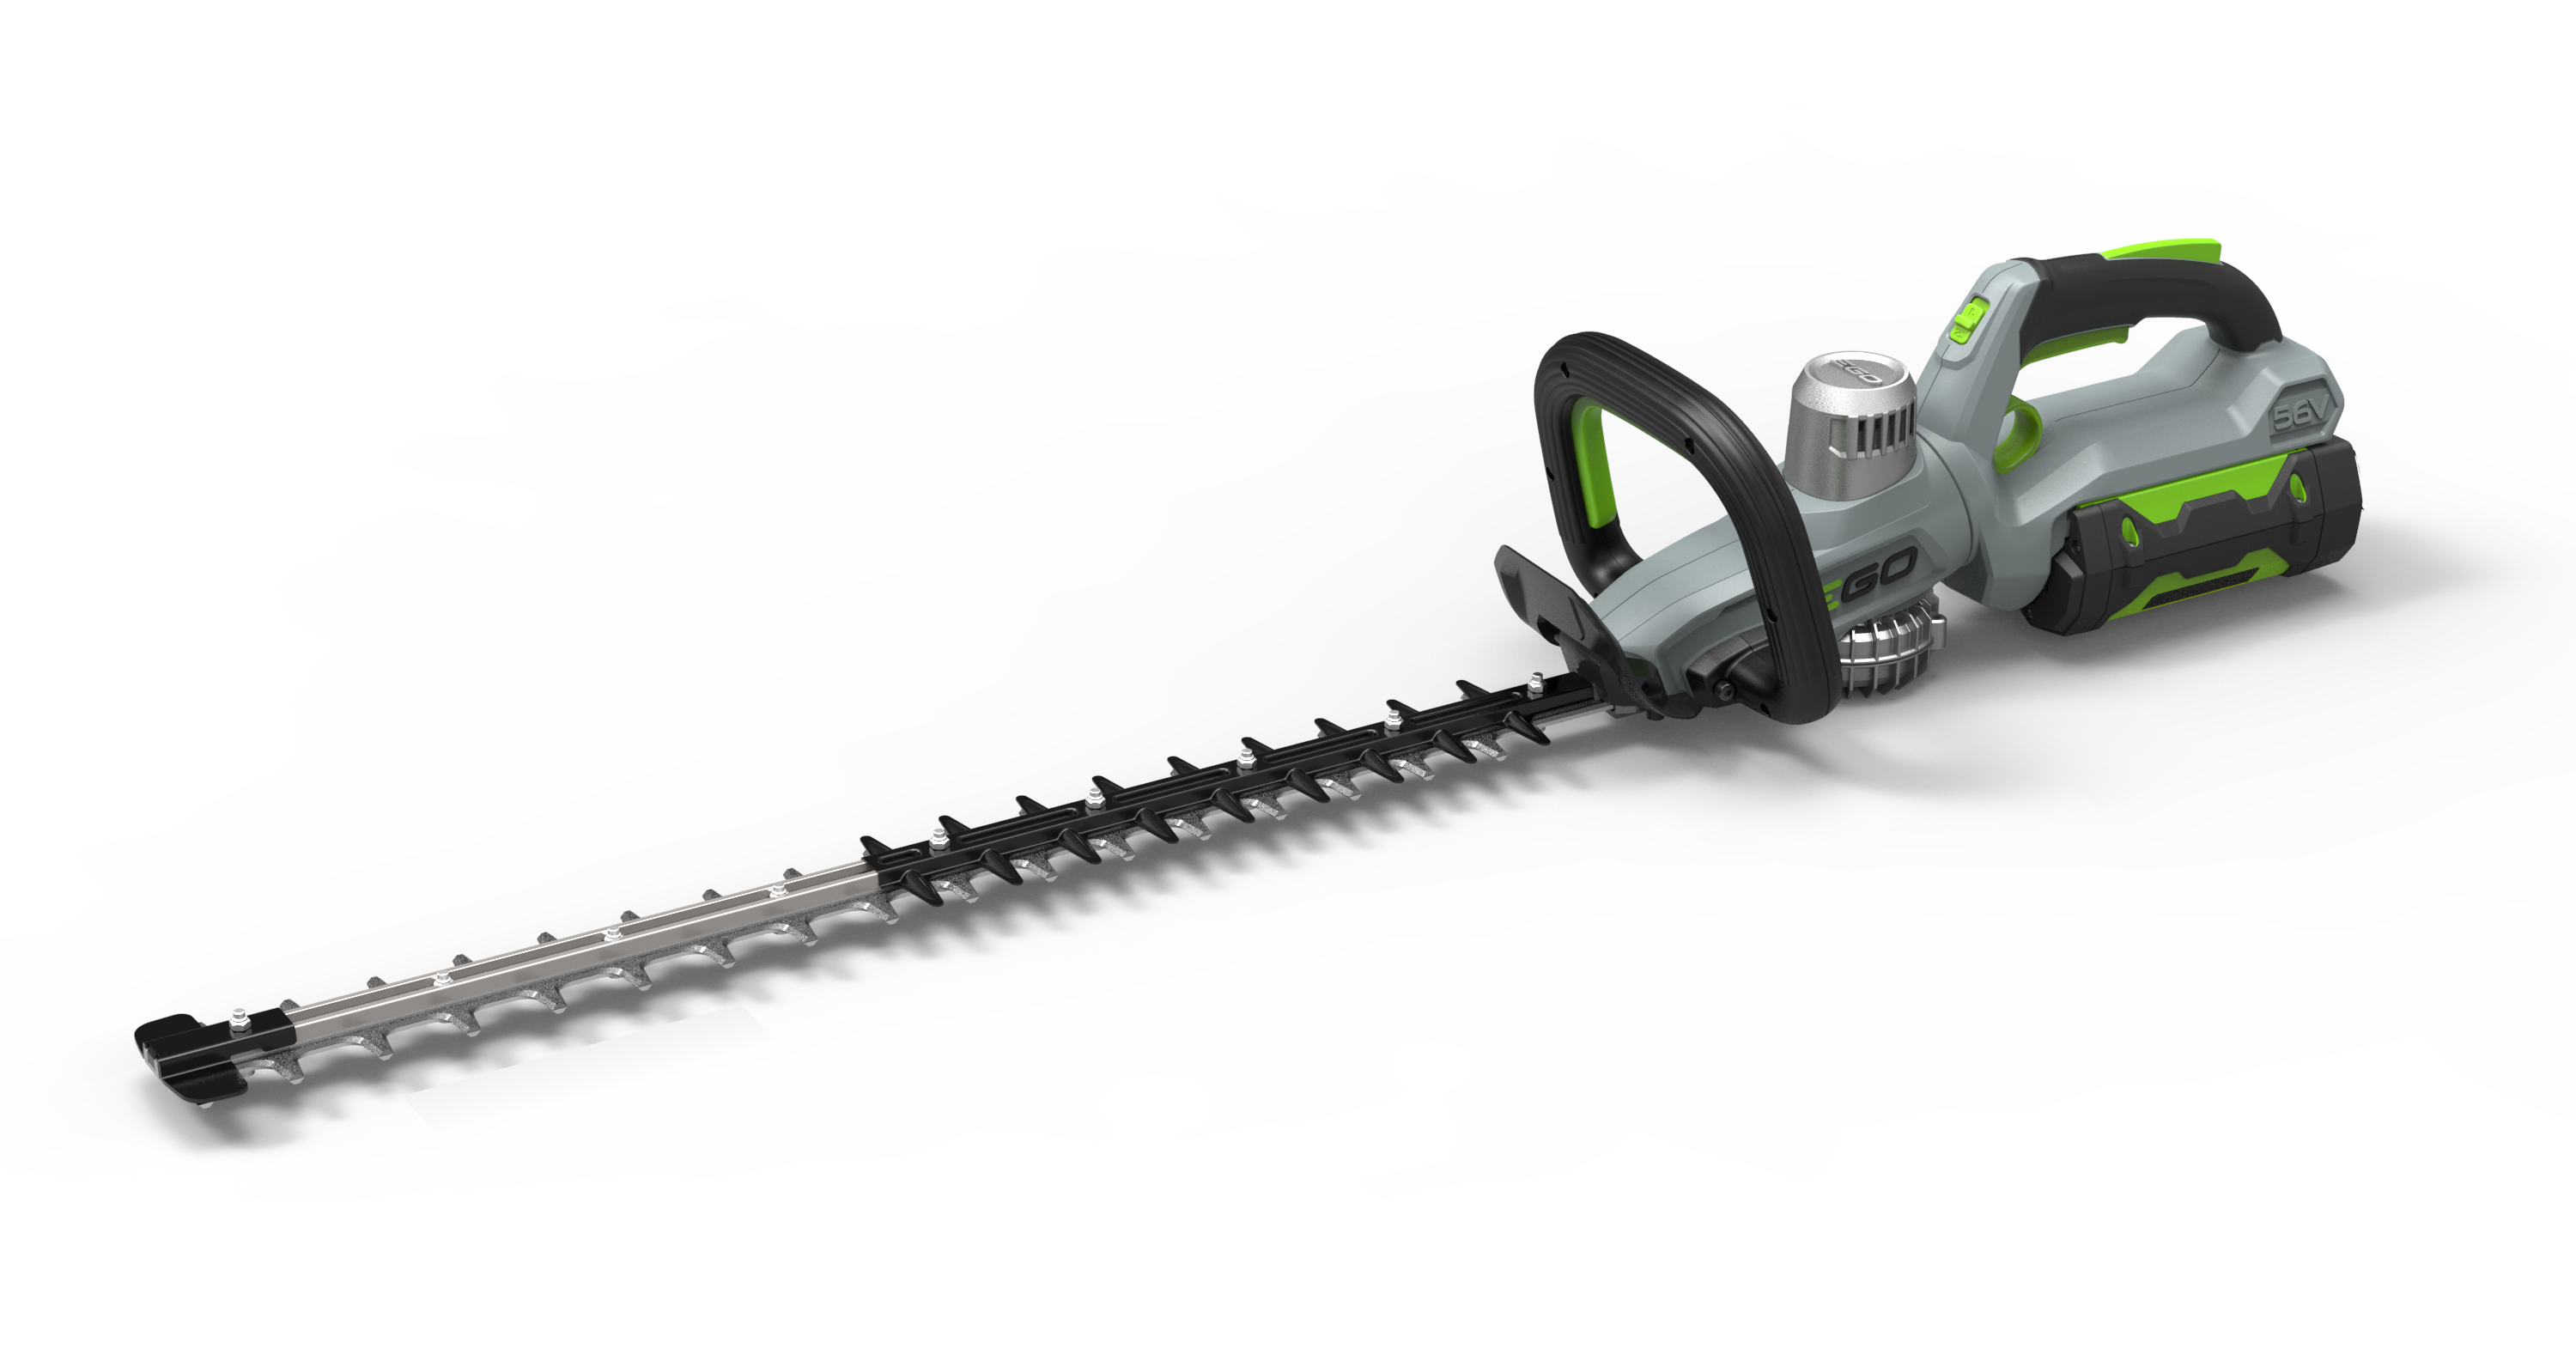 The New Ego 56v Hedge Trimmer The Power Of Petrol Without The Noise Fuss Or Fumes Www Egopwerplus Com Hedge Trimmers Hedges Garden Supply Online